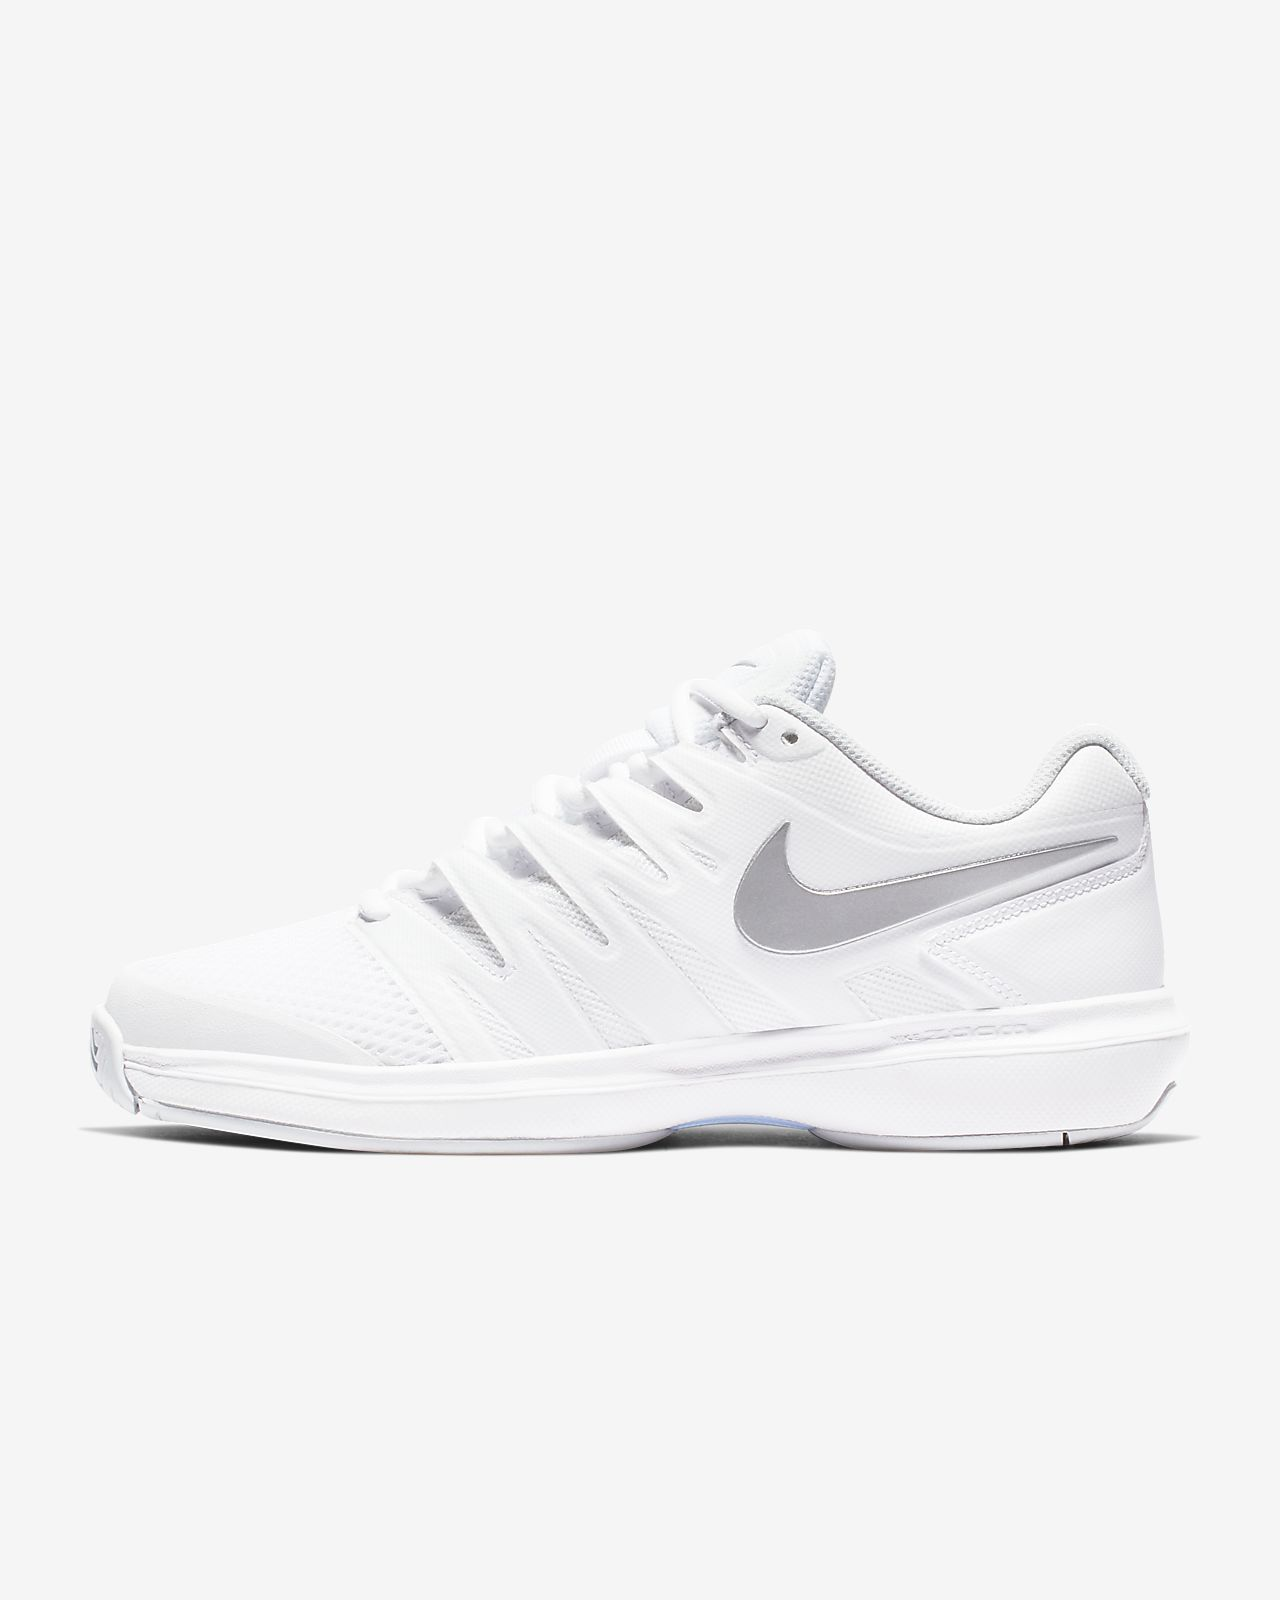 Nike Tennis Shoes Online Singapore Court Air Zoom